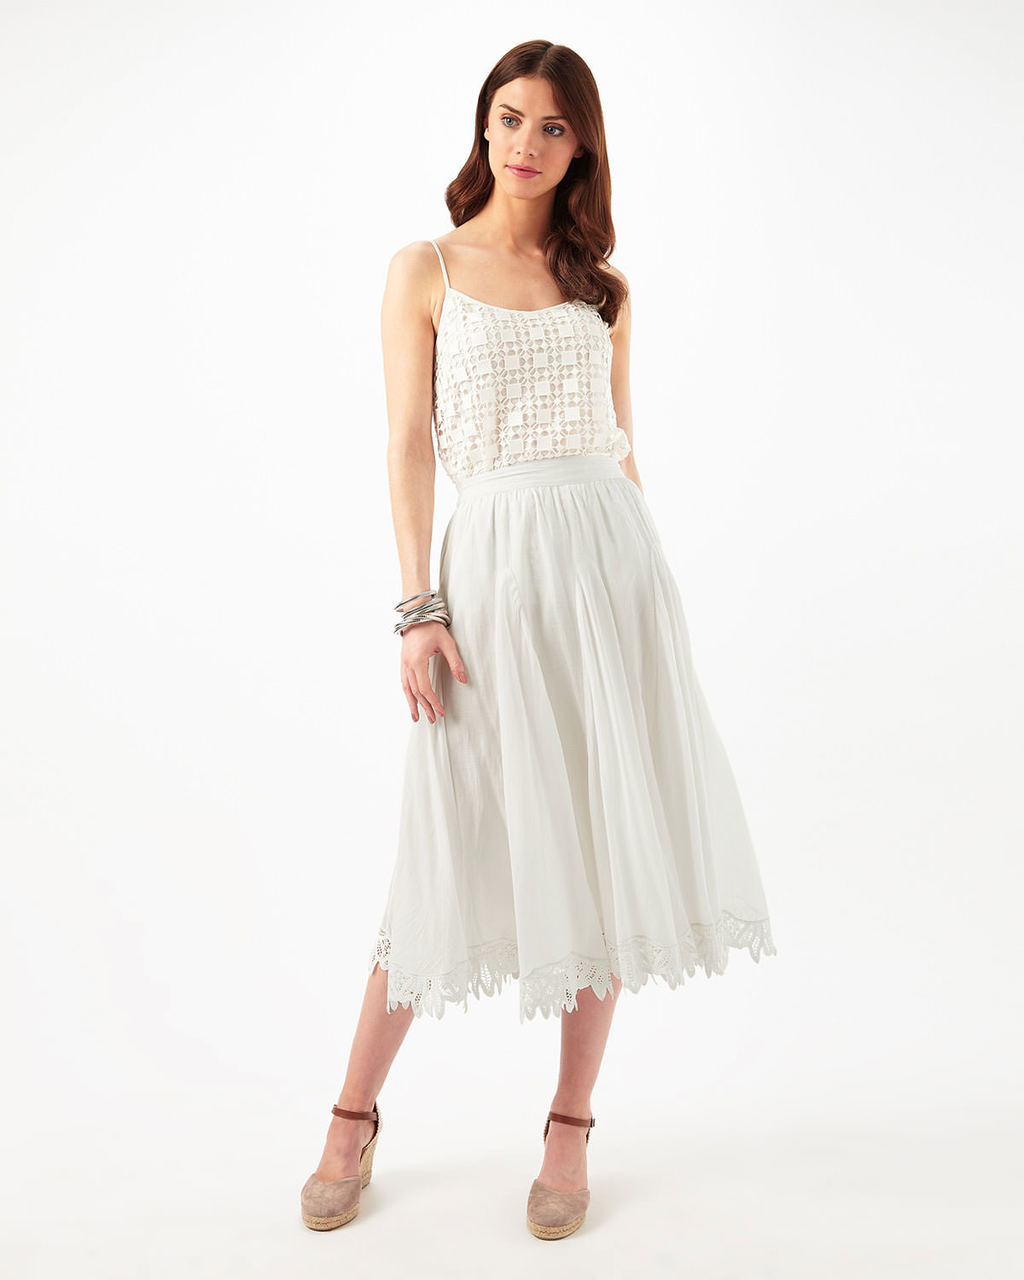 Suri Battenberg Lace Hem Skirt - length: calf length; pattern: plain; style: full/prom skirt; fit: loose/voluminous; waist: mid/regular rise; predominant colour: ivory/cream; occasions: casual; texture group: lace; pattern type: fabric; fibres: viscose/rayon - mix; pattern size: standard (bottom); season: s/s 2016; wardrobe: highlight